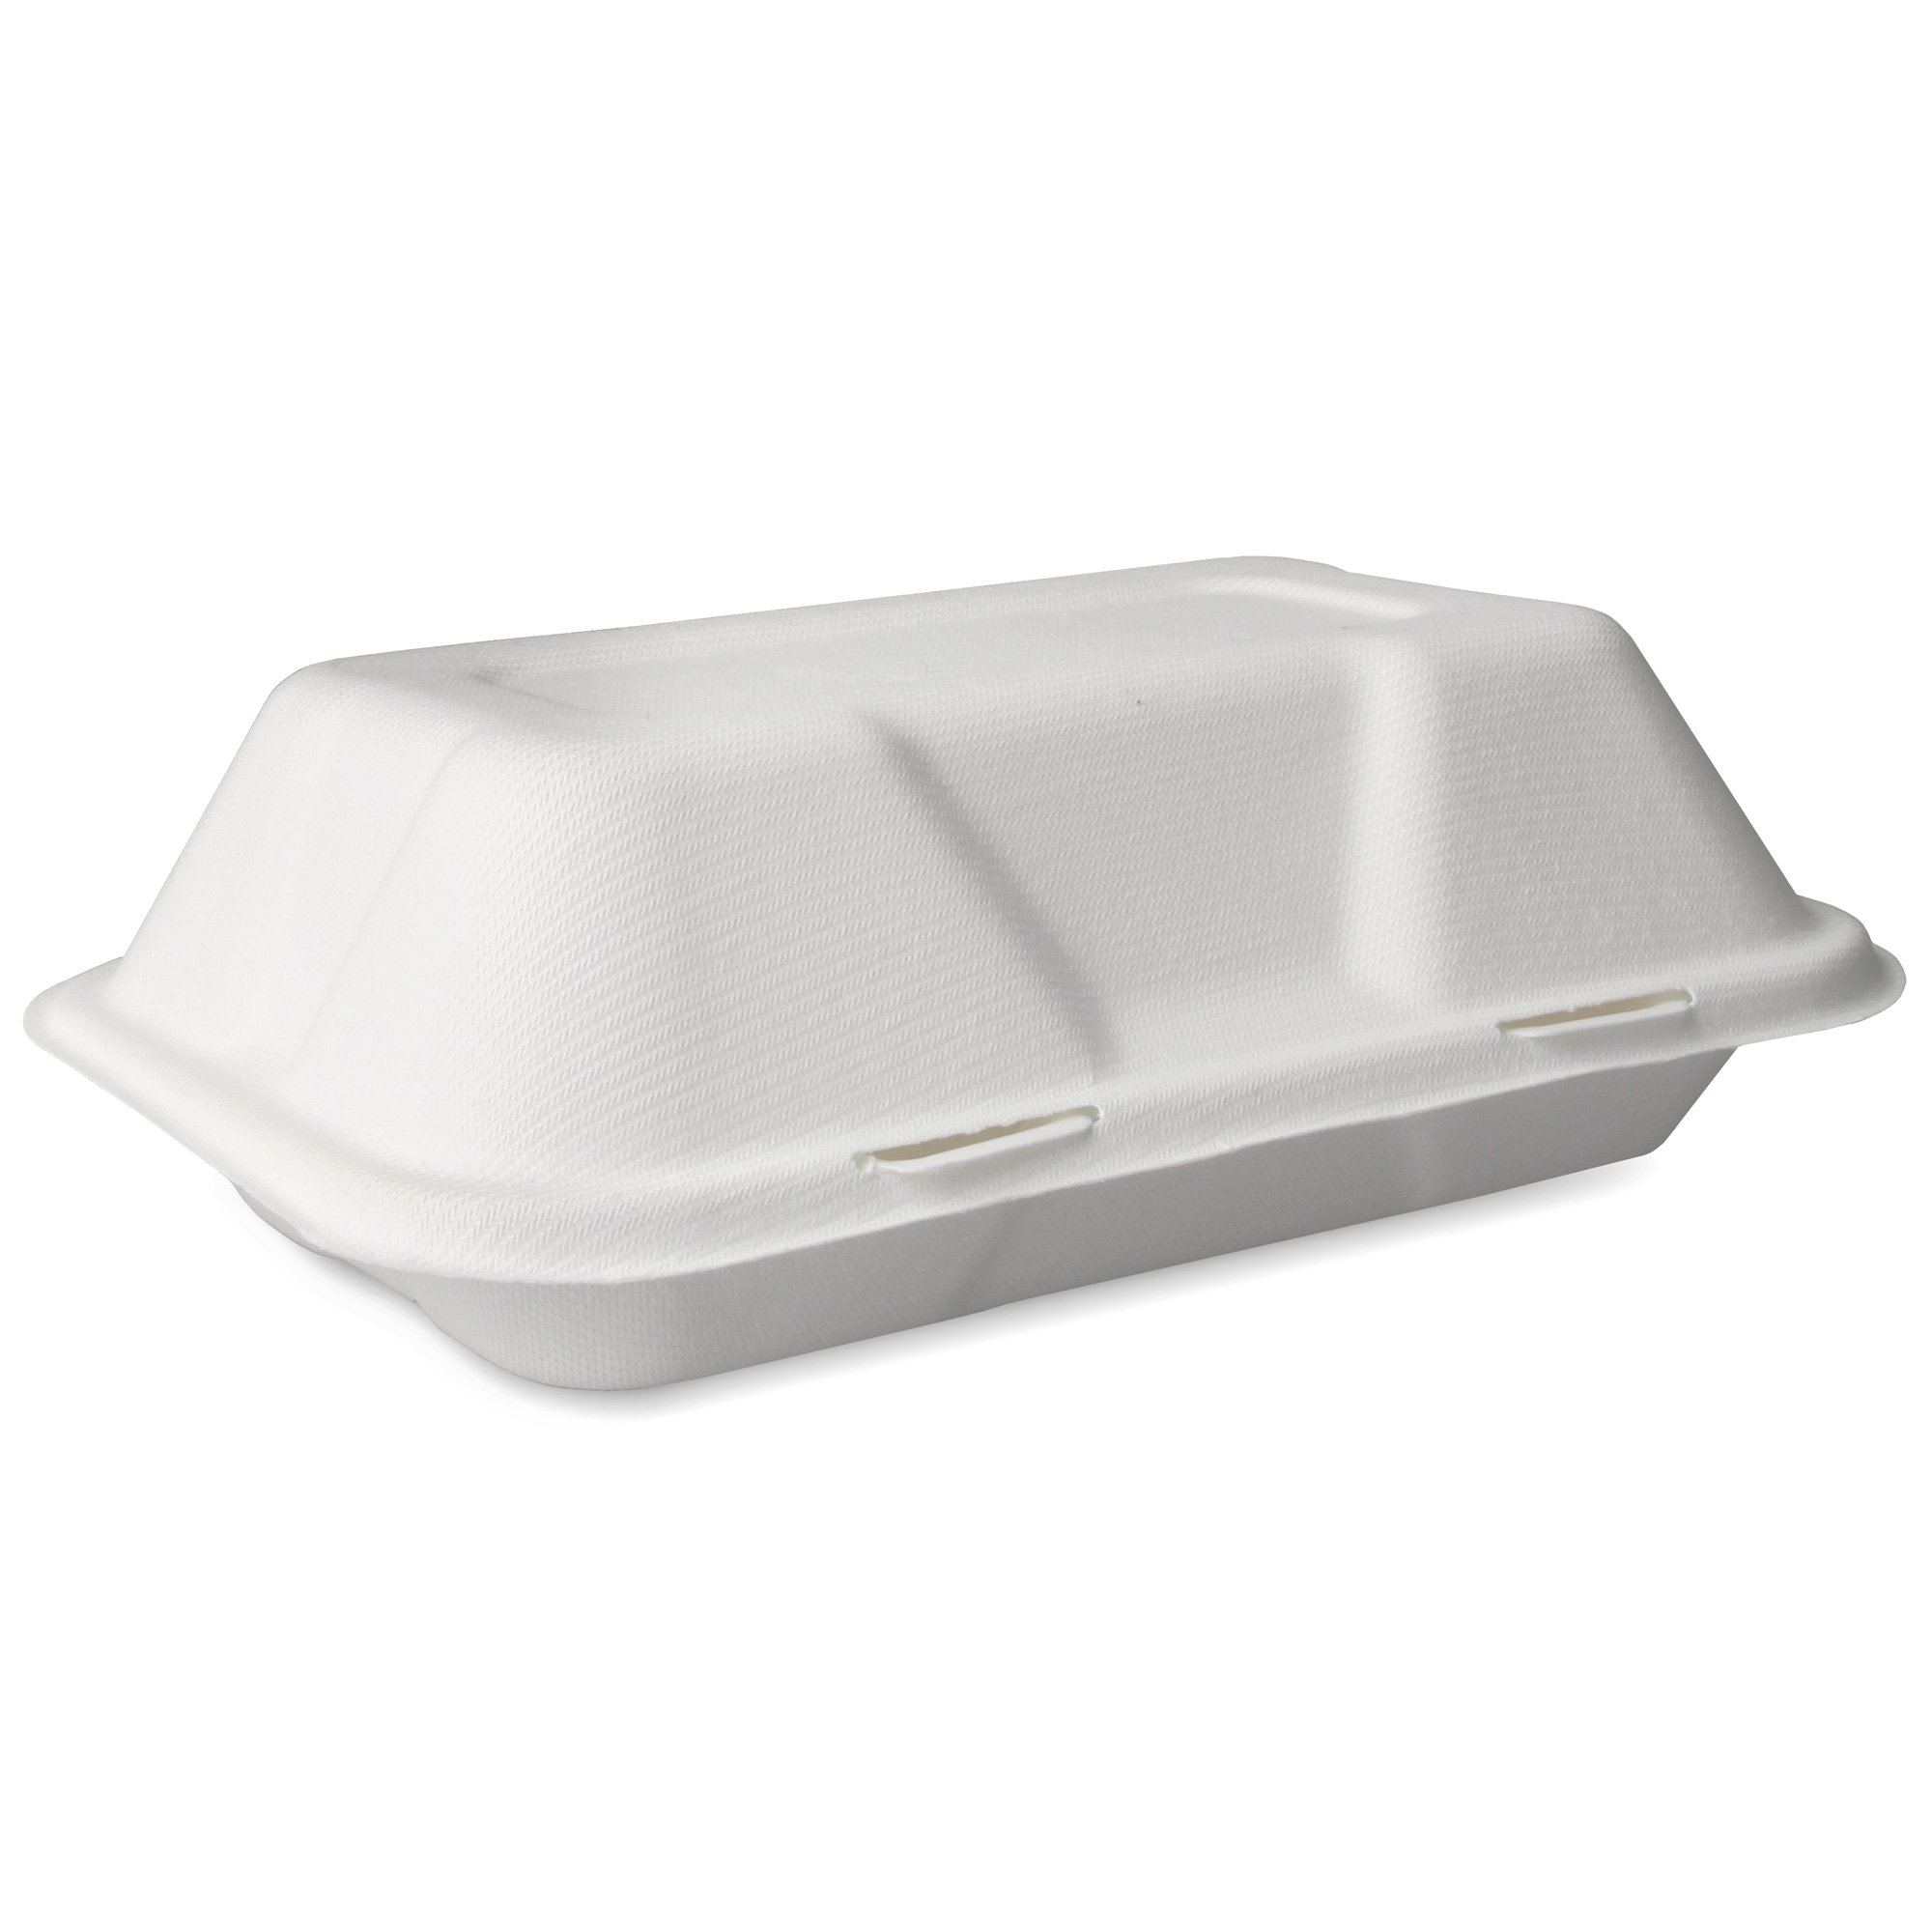 Biodegradable Sugarcane Clamshell Takeaway Box 9 x 6 Inch - Pack of 50 - Eco-friendly Packaging